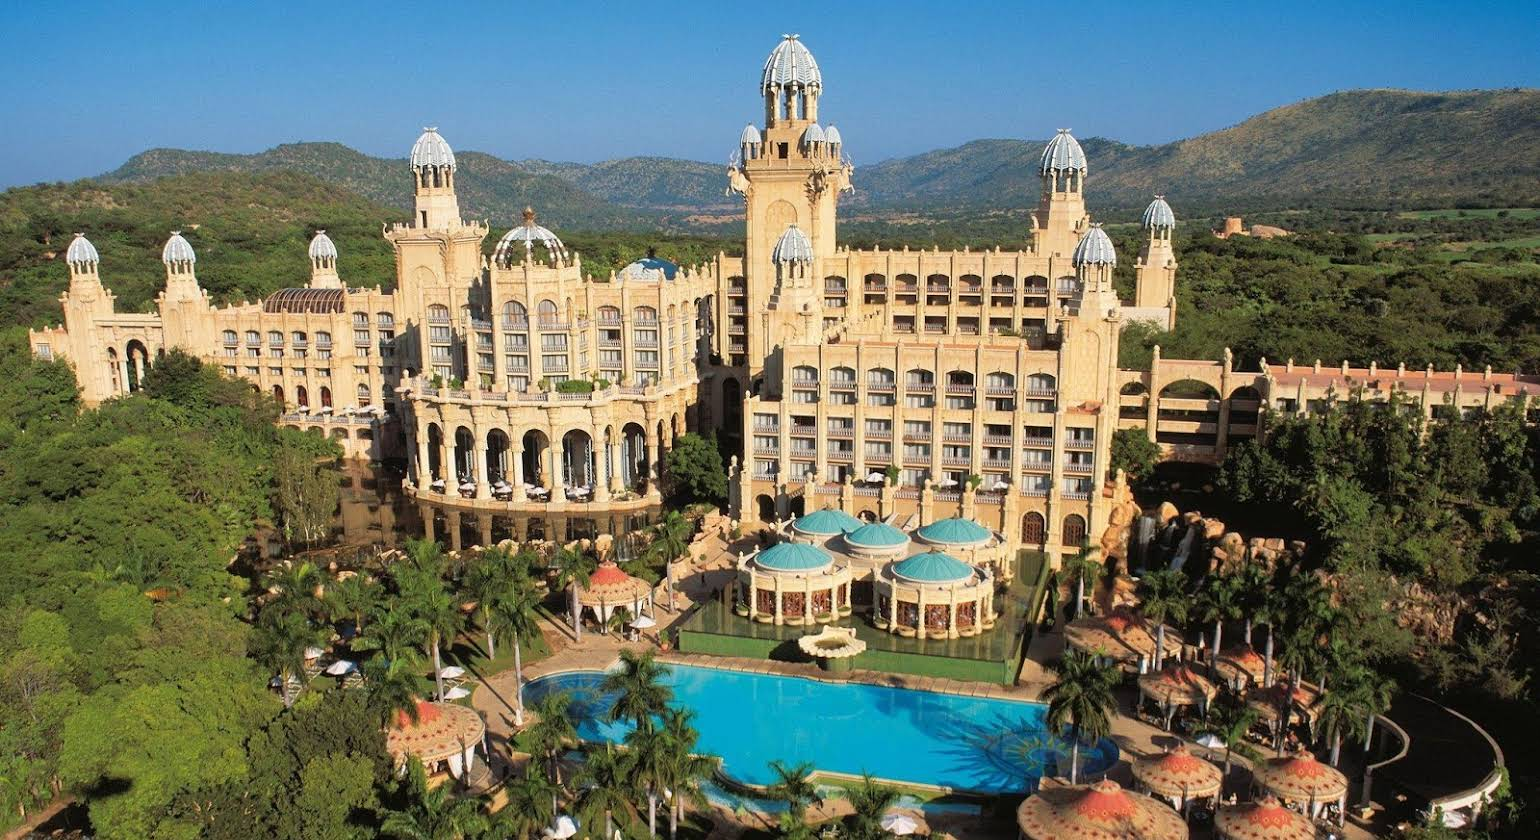 The Palace of the Lost City at Sun City Resort